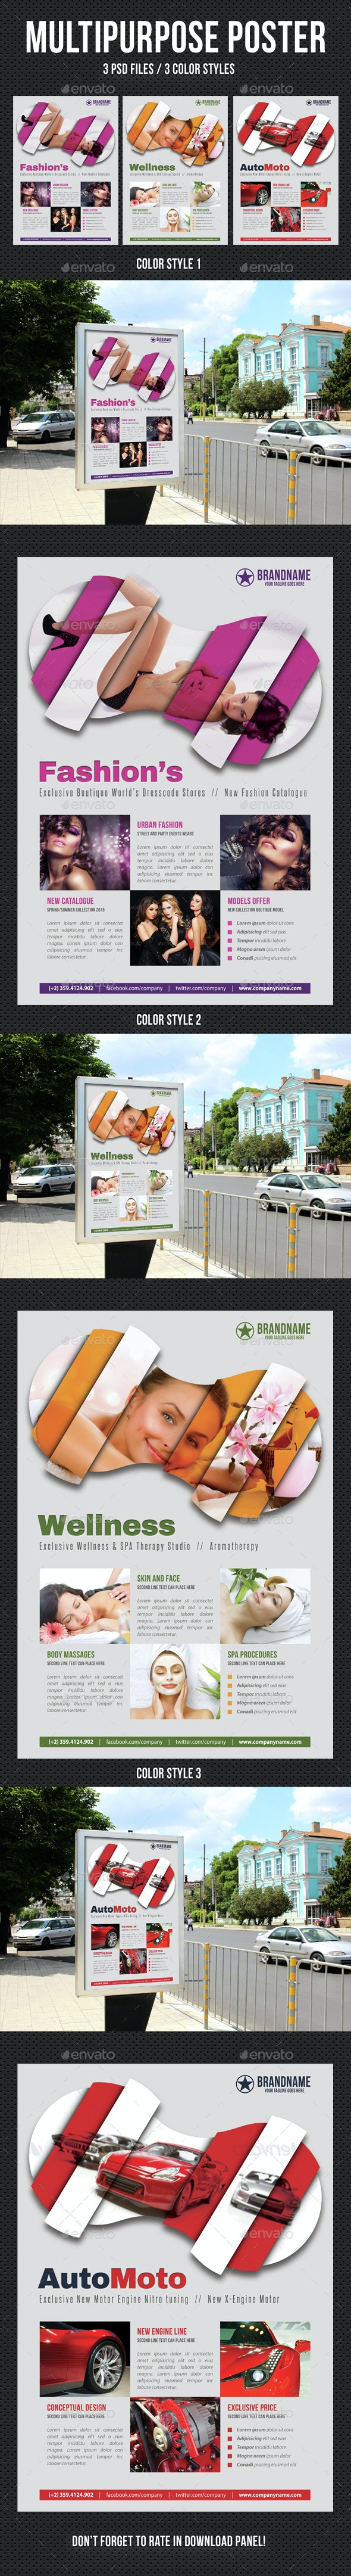 Multipurpose Flexible Poster 04 - Signage Print Templates